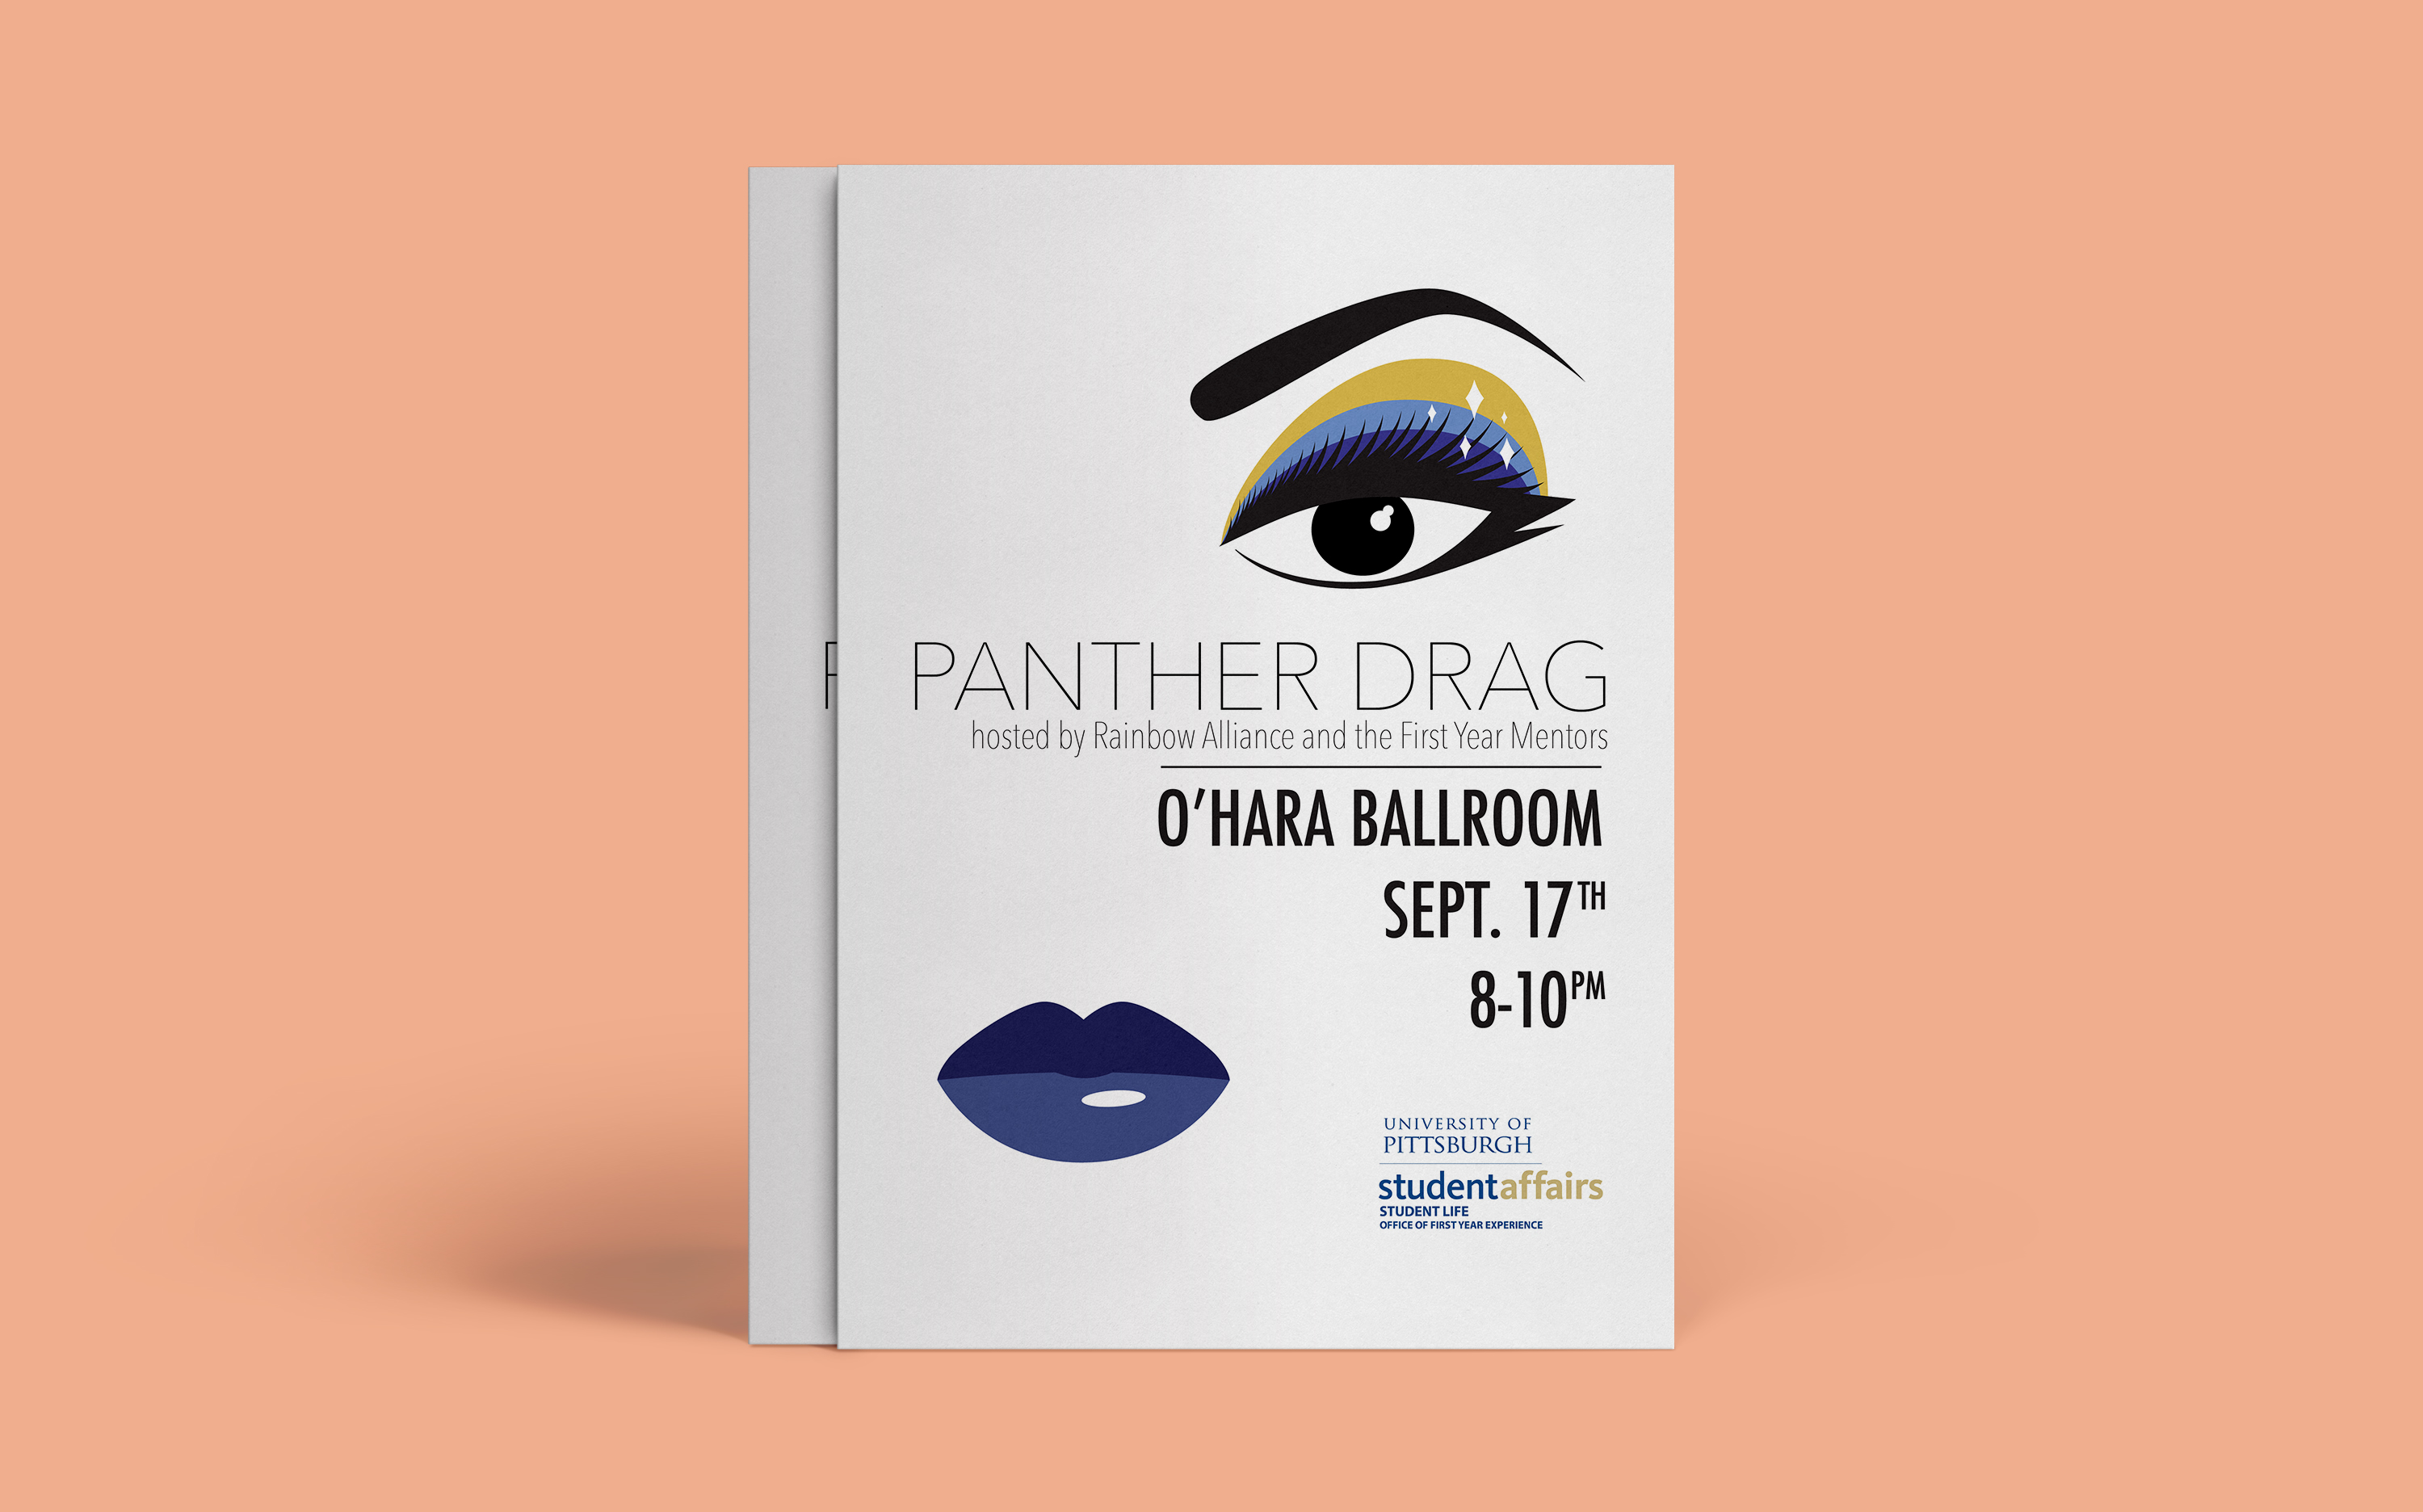 A mockup of a poster over a salmon-colored background. The poster served as an ad for a student-led drag show event called Panther Drag, and features vector illustrations of an eye and lips in Pitt-colored drag makeup (that is, blue and gold).